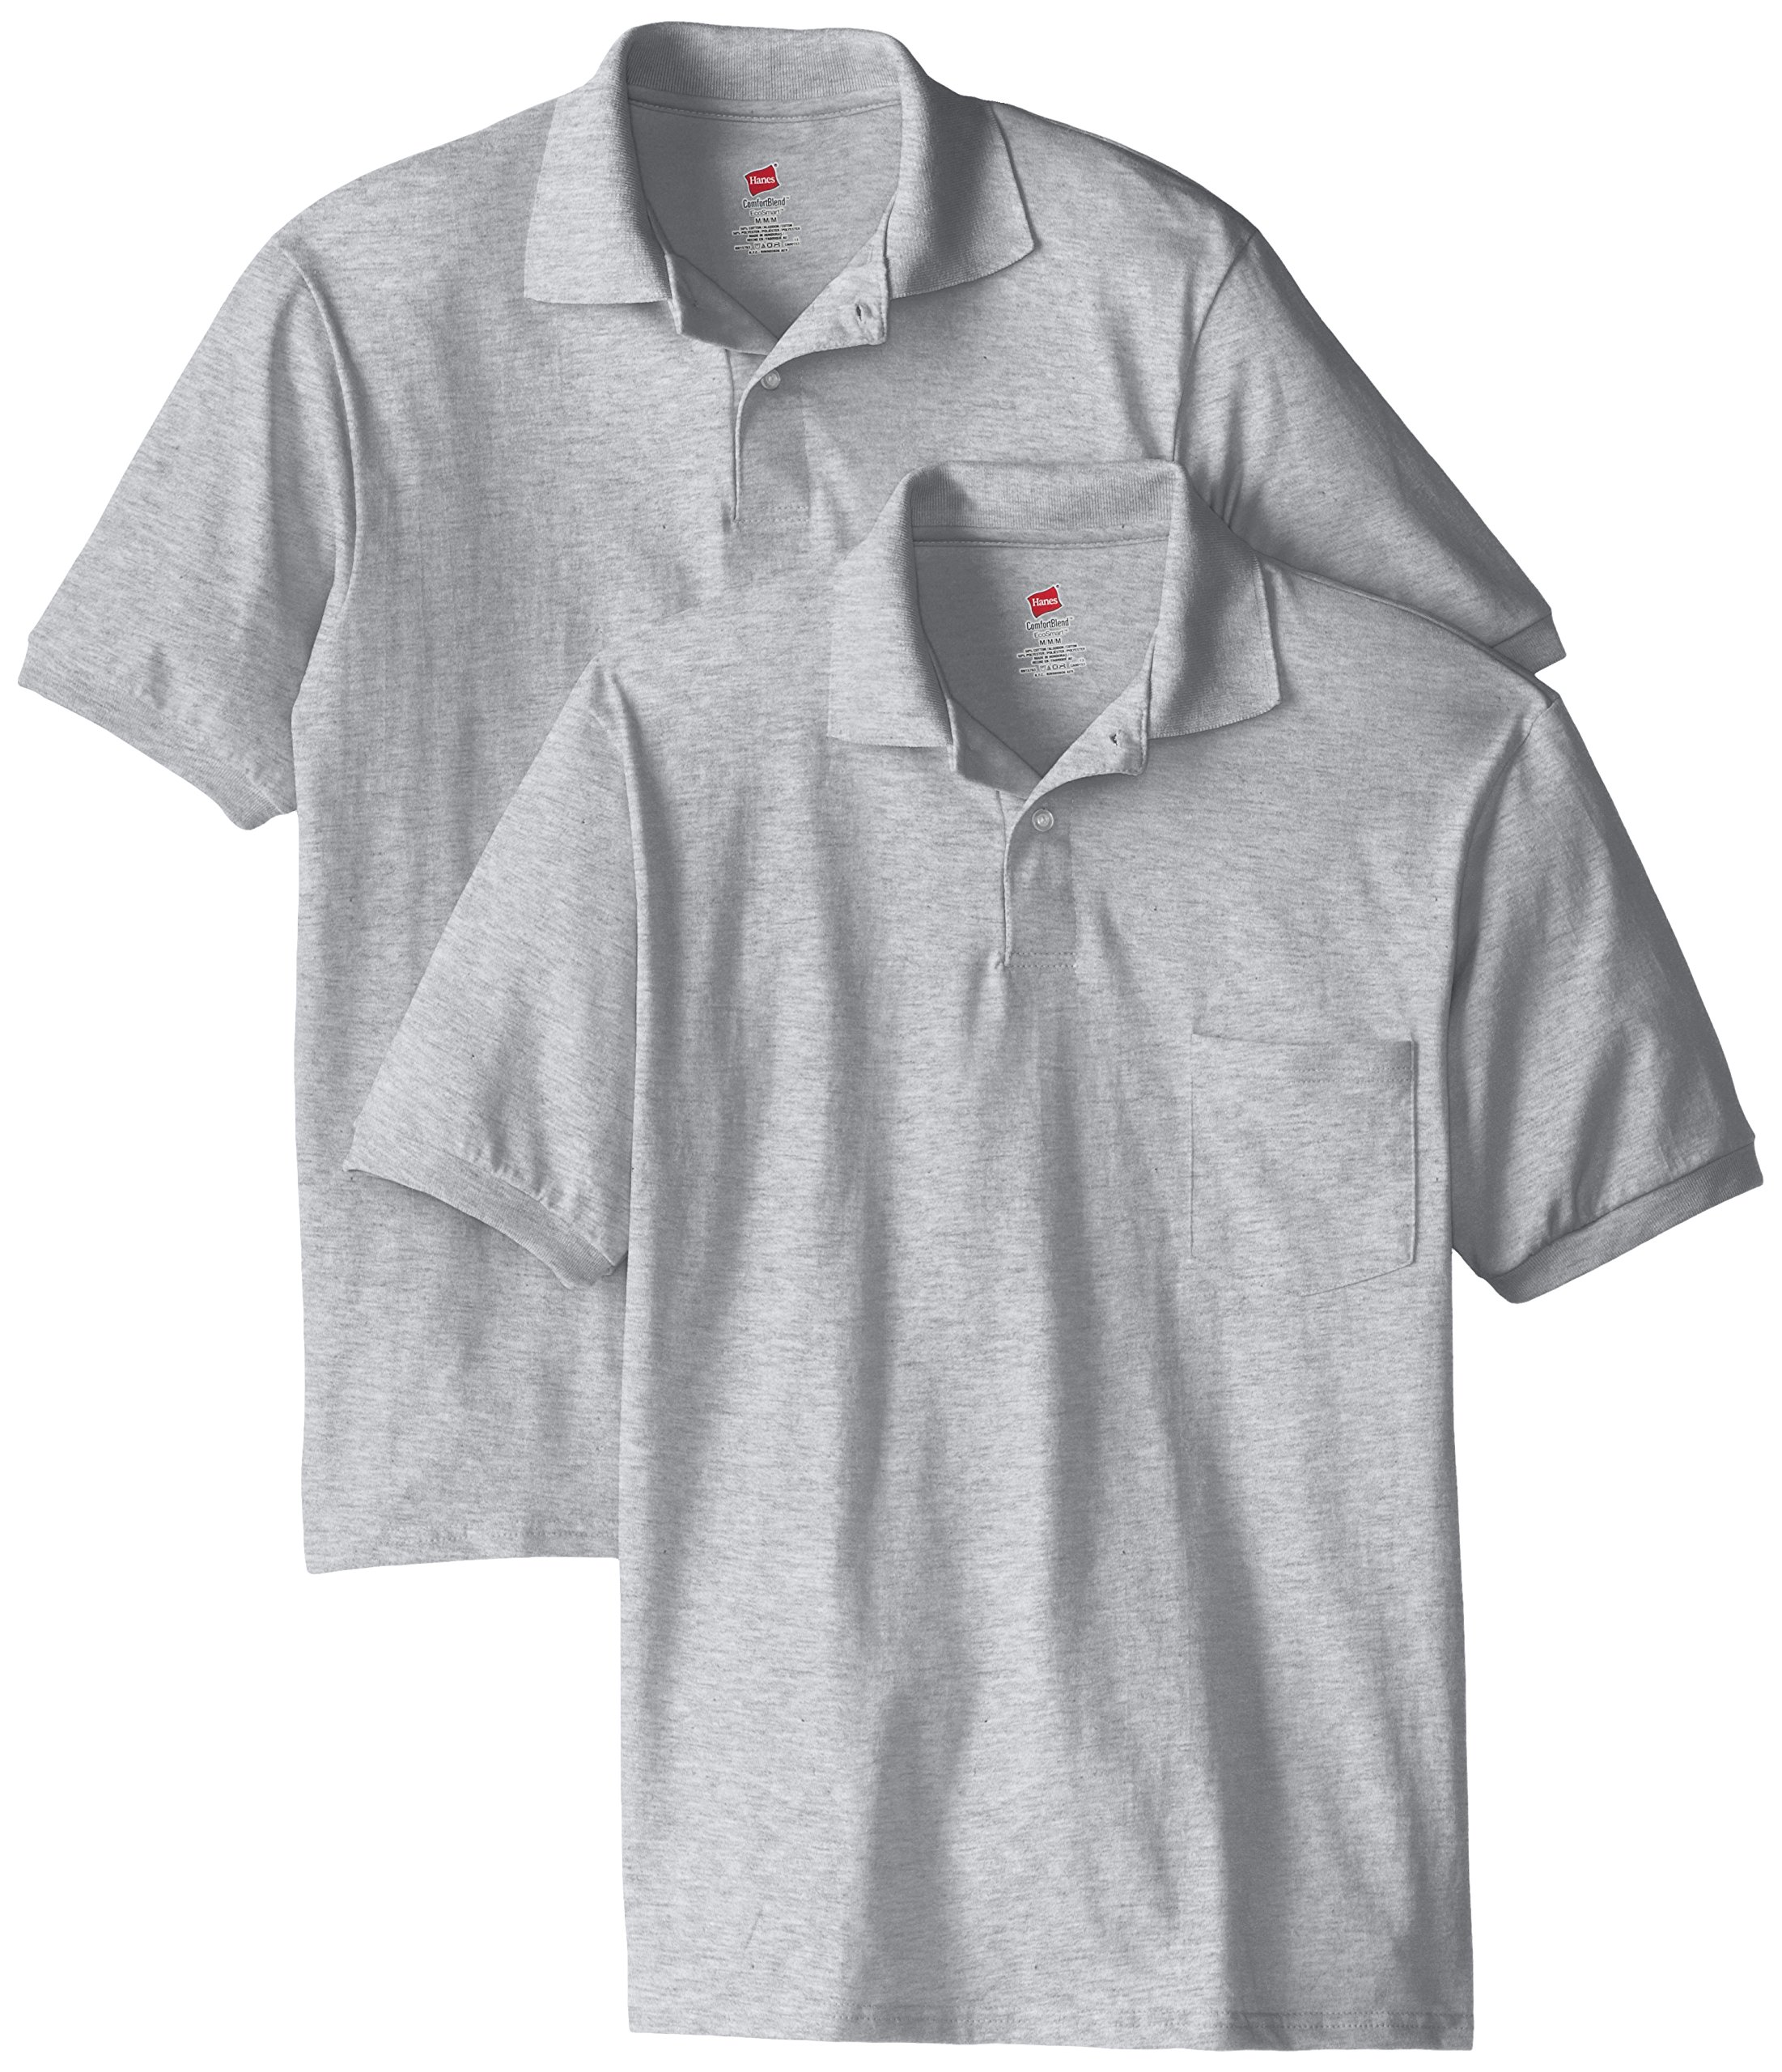 Hanes Men's Short Sleeve Jersey Pocket Polo, Light Steel, 3X-Large (Pack of 2)